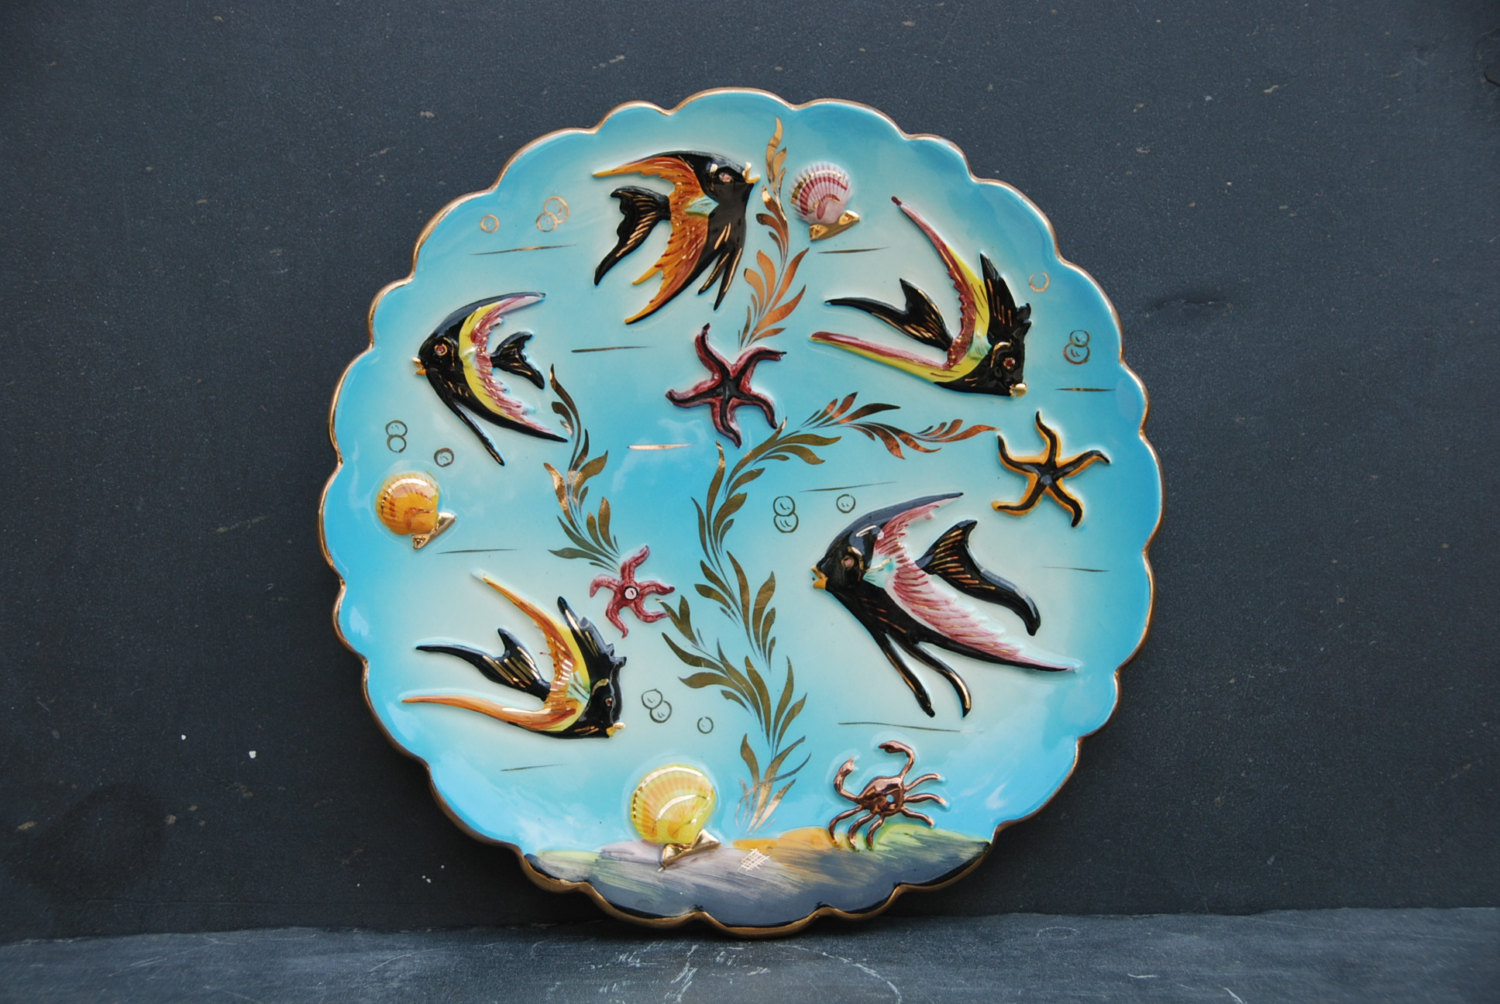 Latest Vintage French 1950s Glazed Ceramic Plate For Wall Decor. (Gallery 4 of 20)